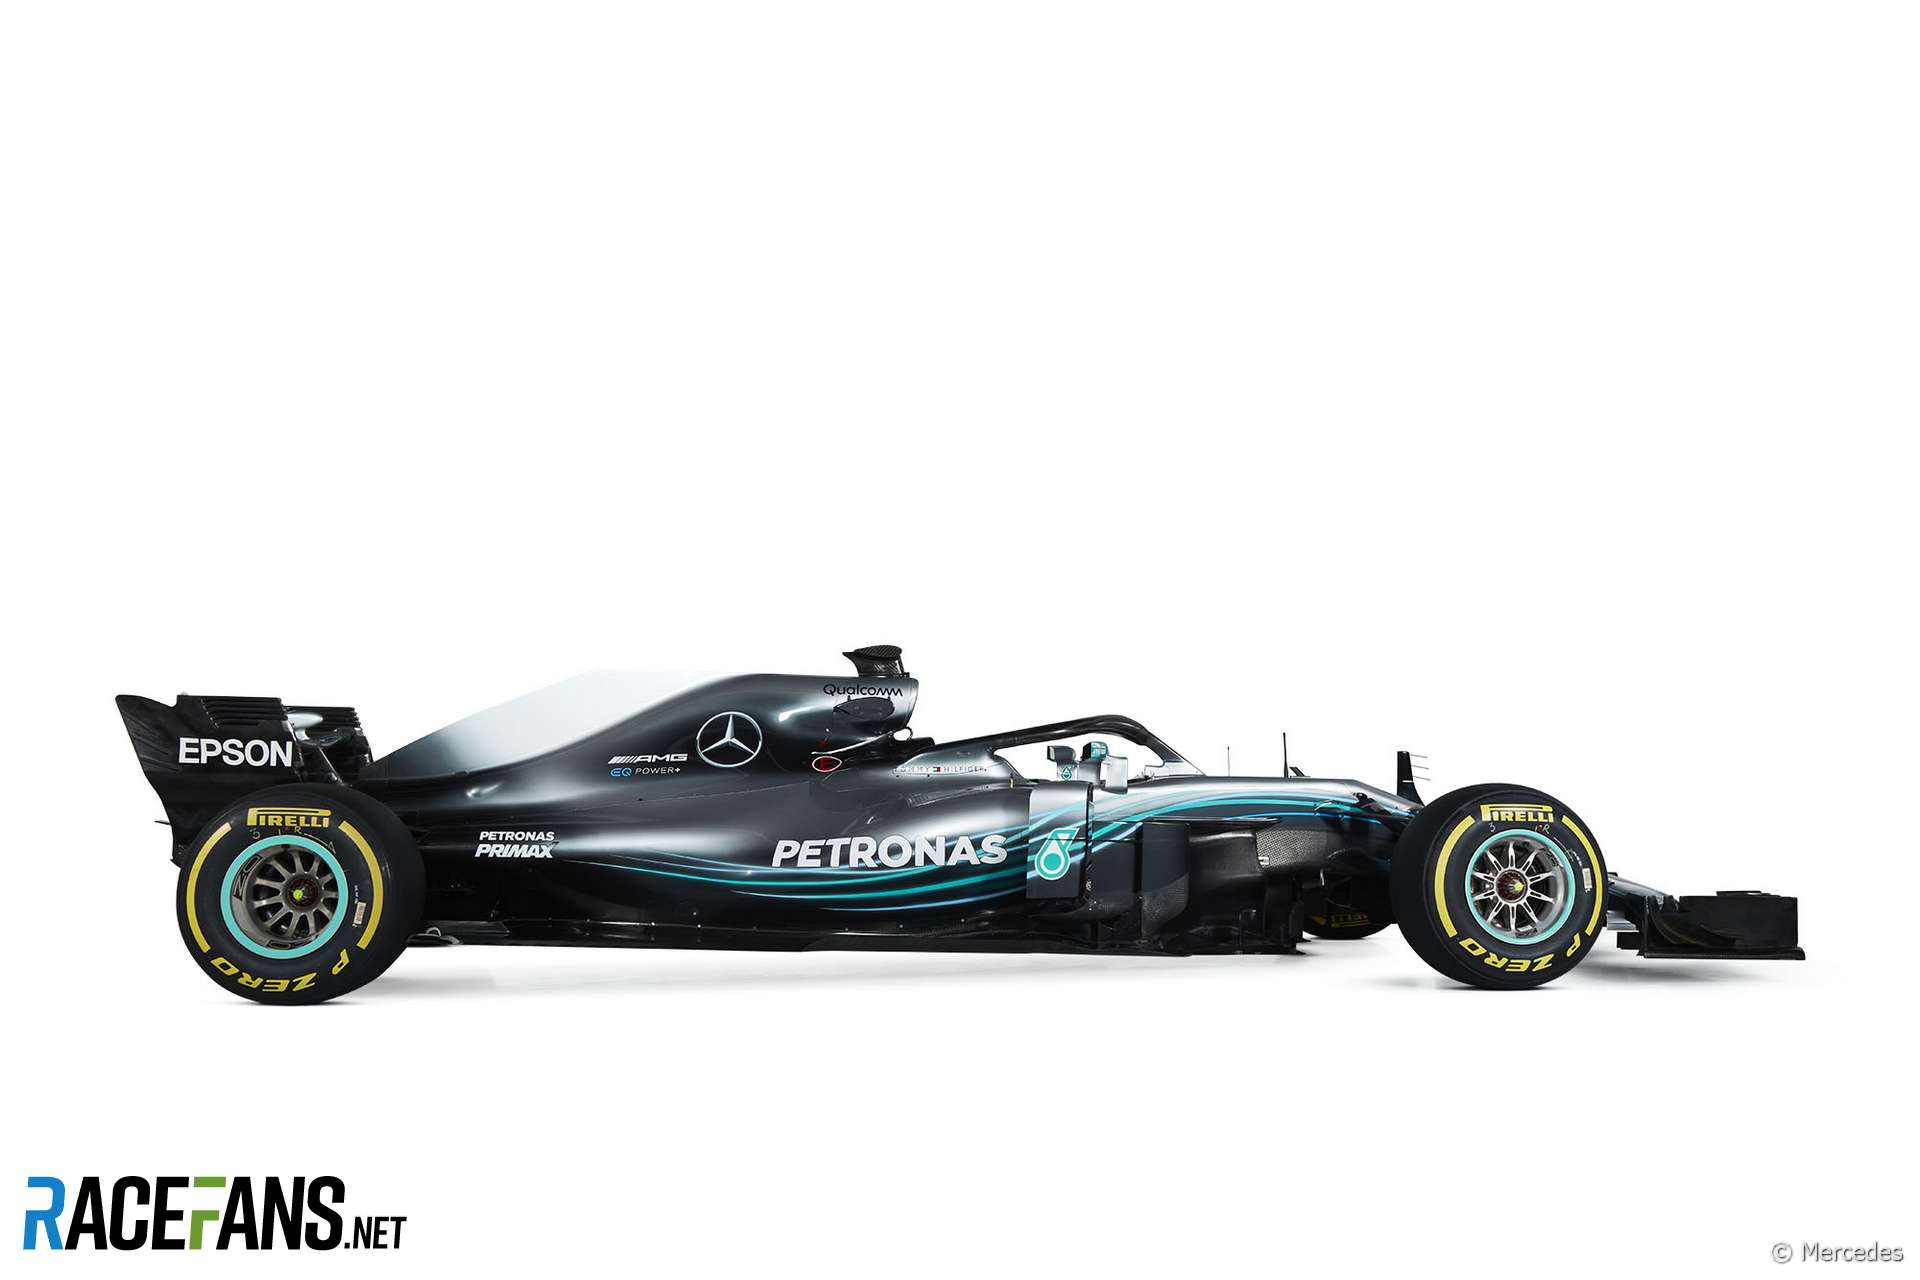 Compare mercedes new w09 with its 2018 car 2018 f1 for Mercedes benz f1 car